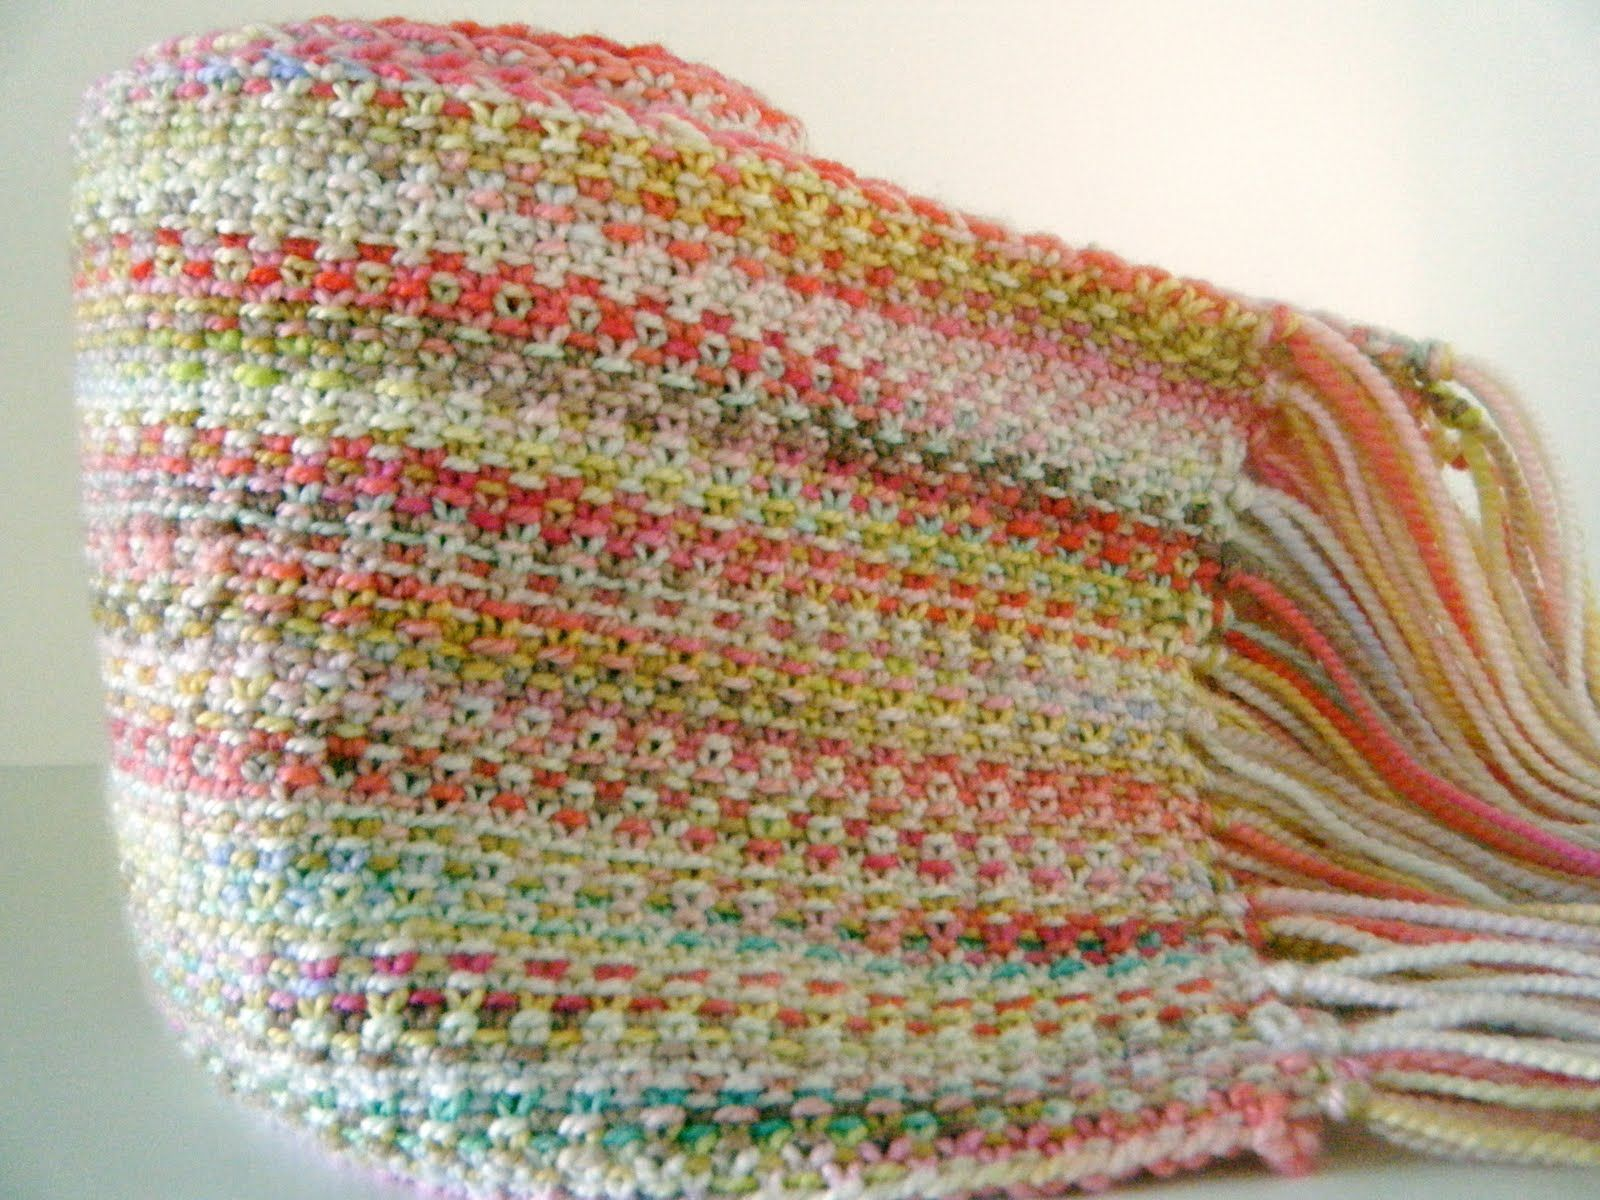 Crochet Patterns Linen Yarn : Linen stitch scarf in Koigu yarn Traditional Crafts and Folk Art ...